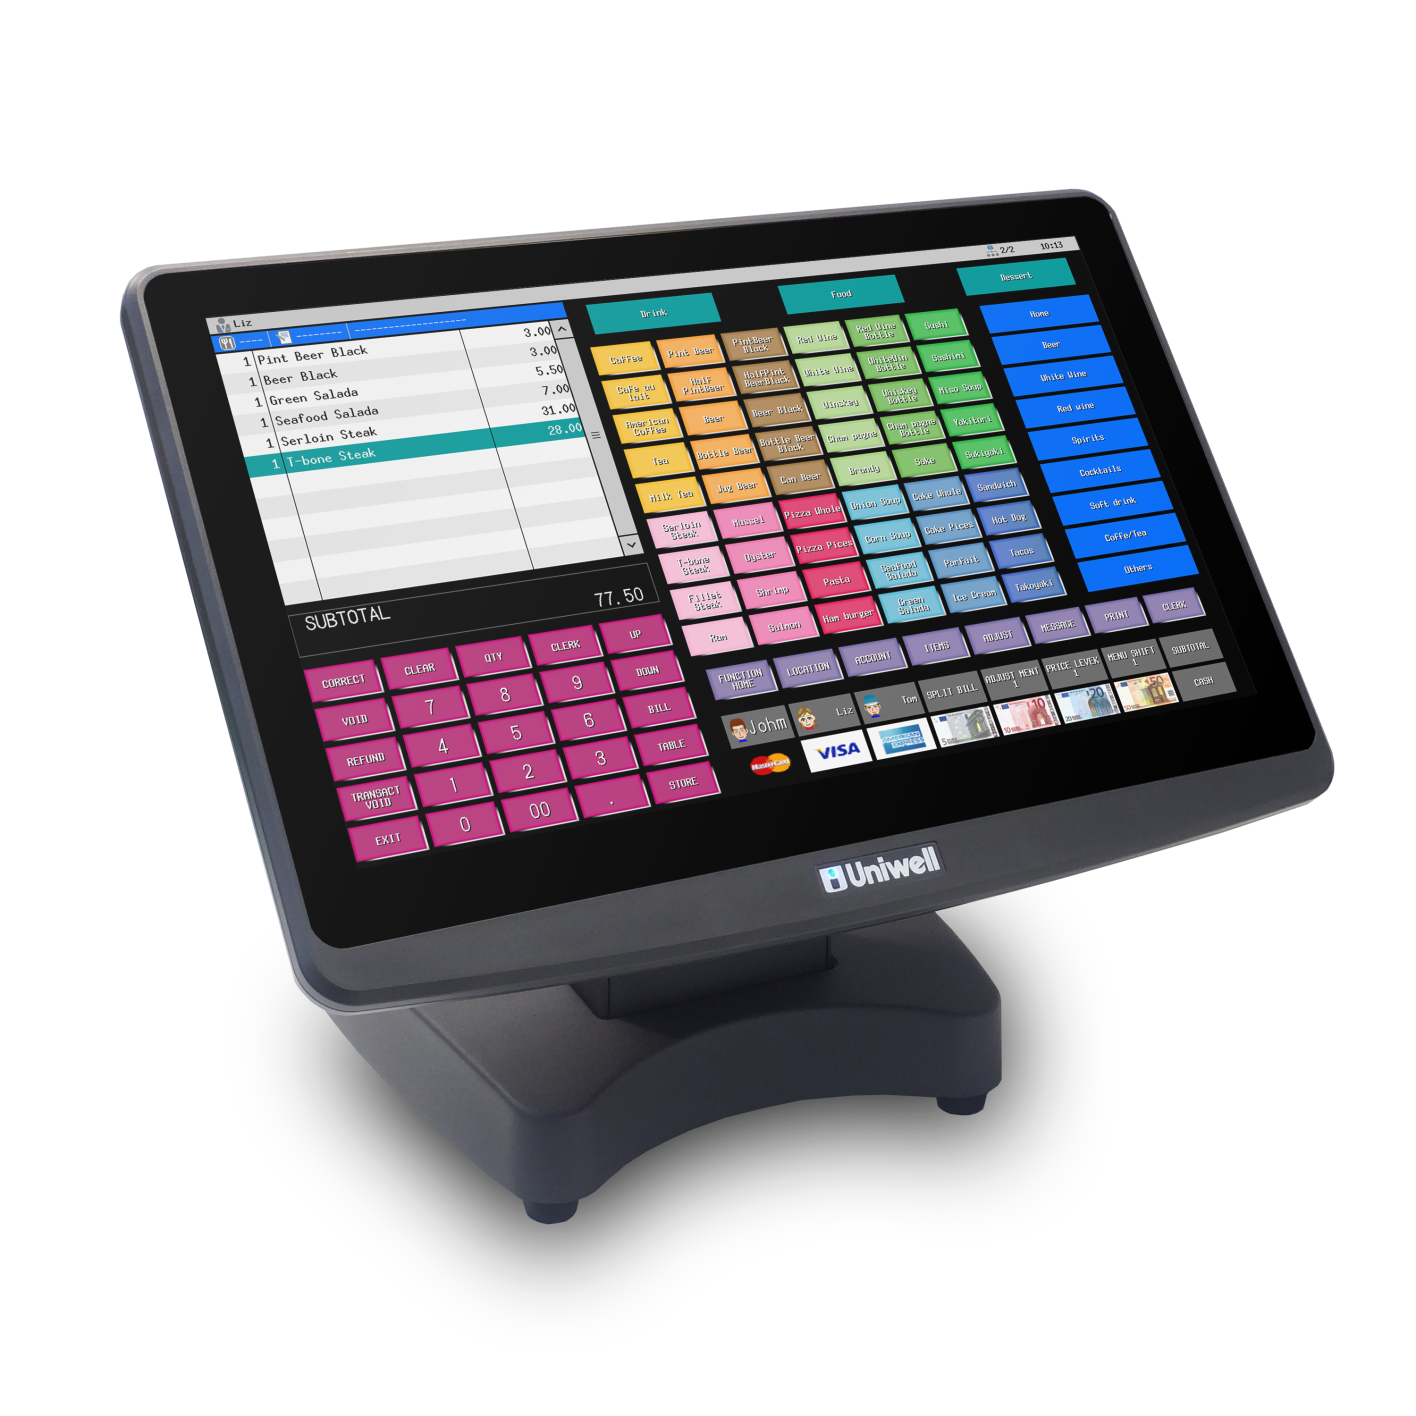 New Uniwell Hx 5500 Pos Terminal For Hospitality And Food Retail Honeywell Smart Vfd Compact Applications Cafes Restaurants Bars Bottleshops Convenience Stores Pizzerias